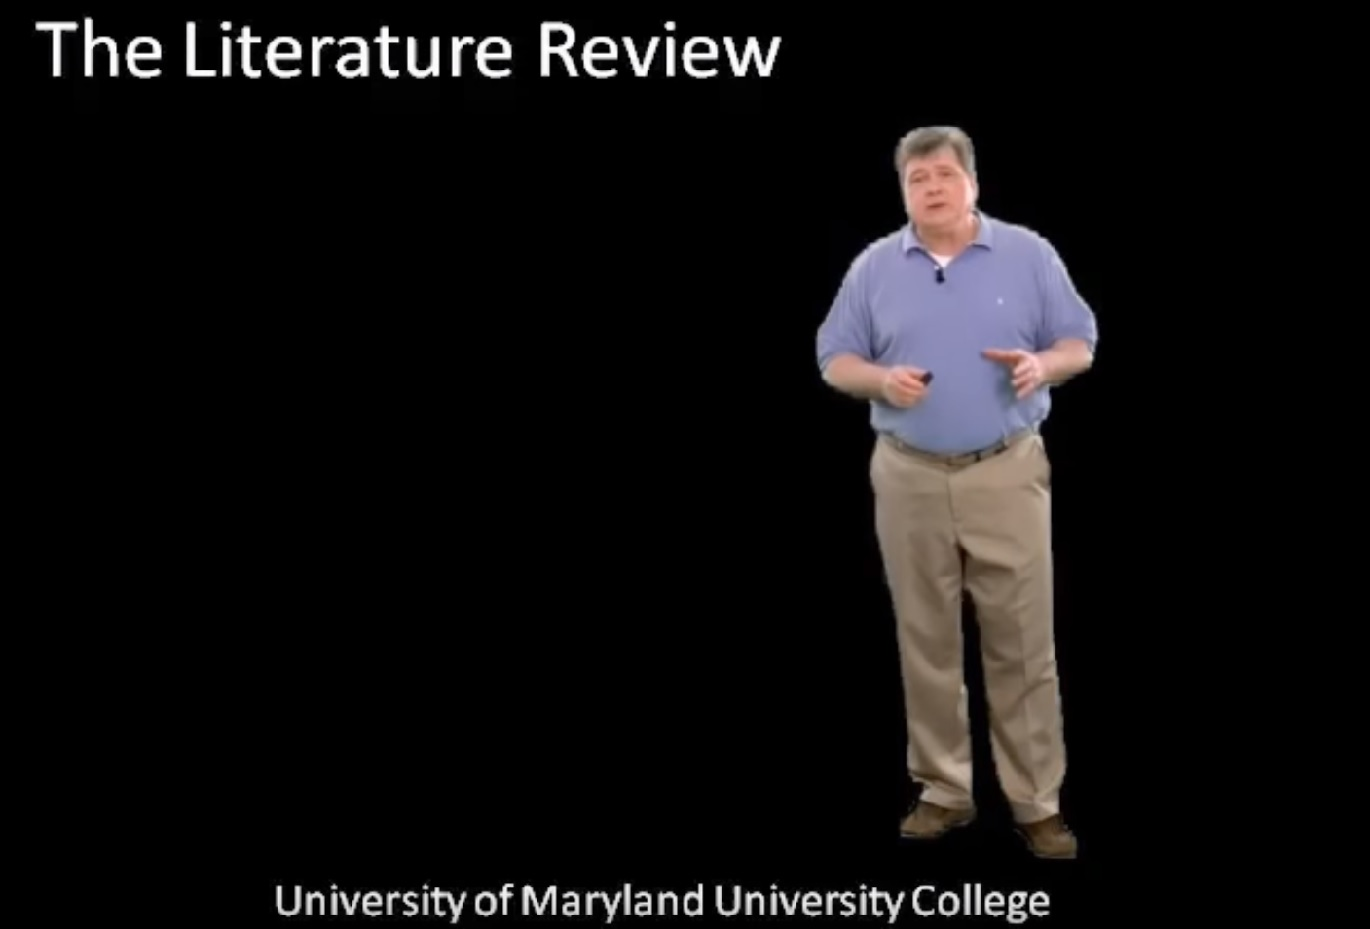 (Video) The lit review - UMUC